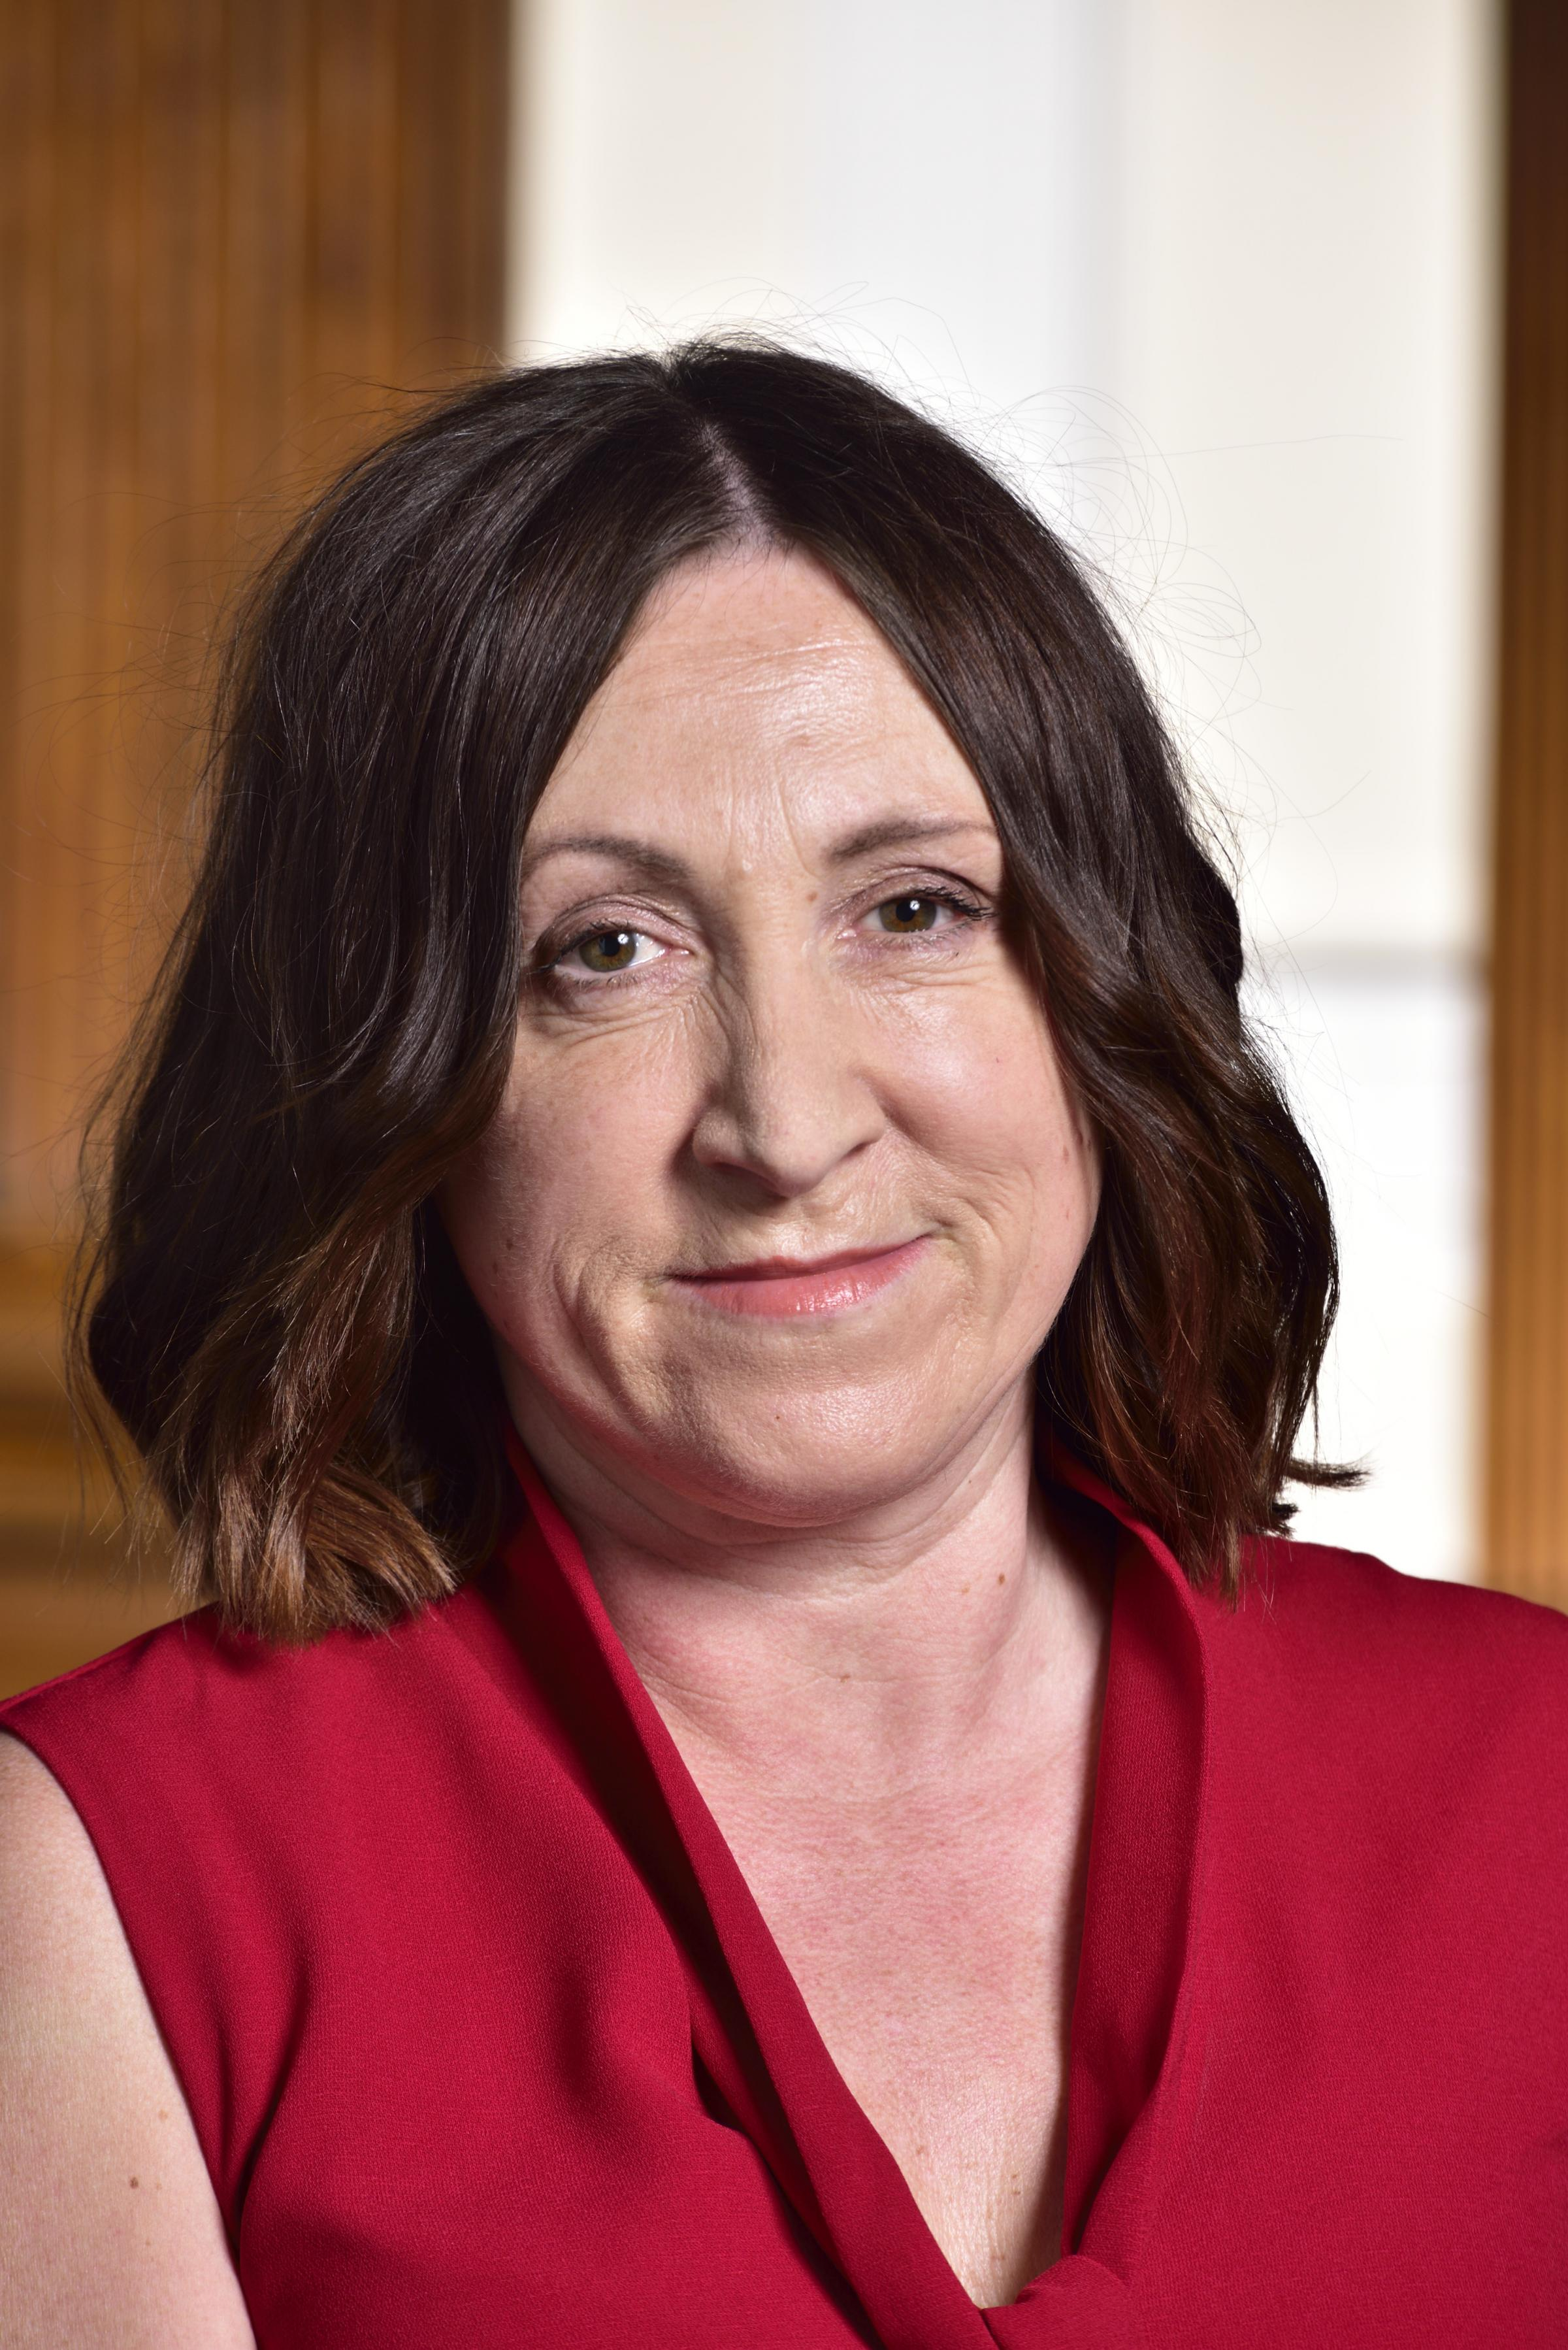 'Traitor' text message sent to Wirral councillor Janette Williamson